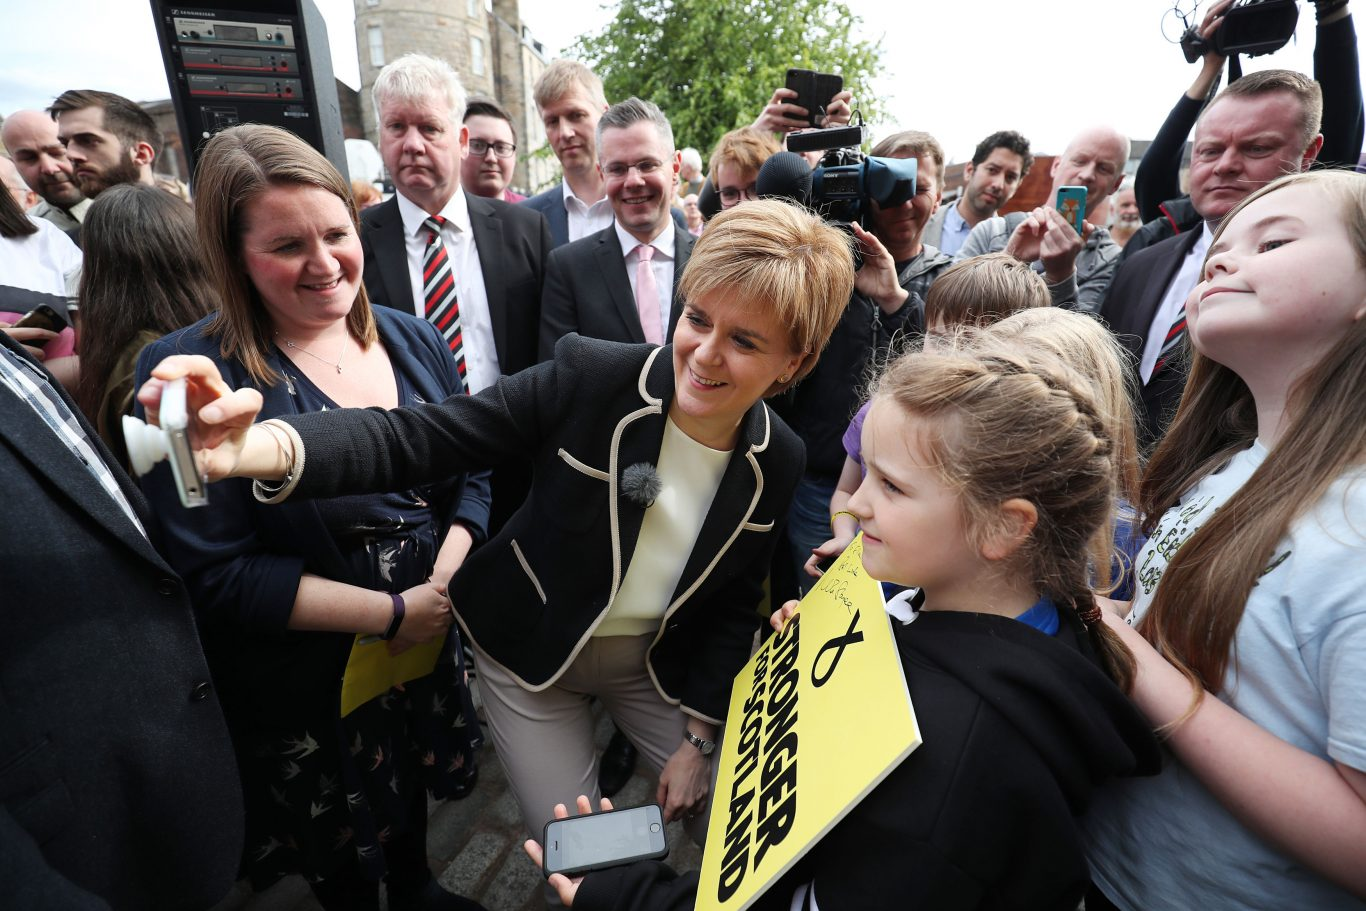 Election dents Scottish nationalists' hopes for independence